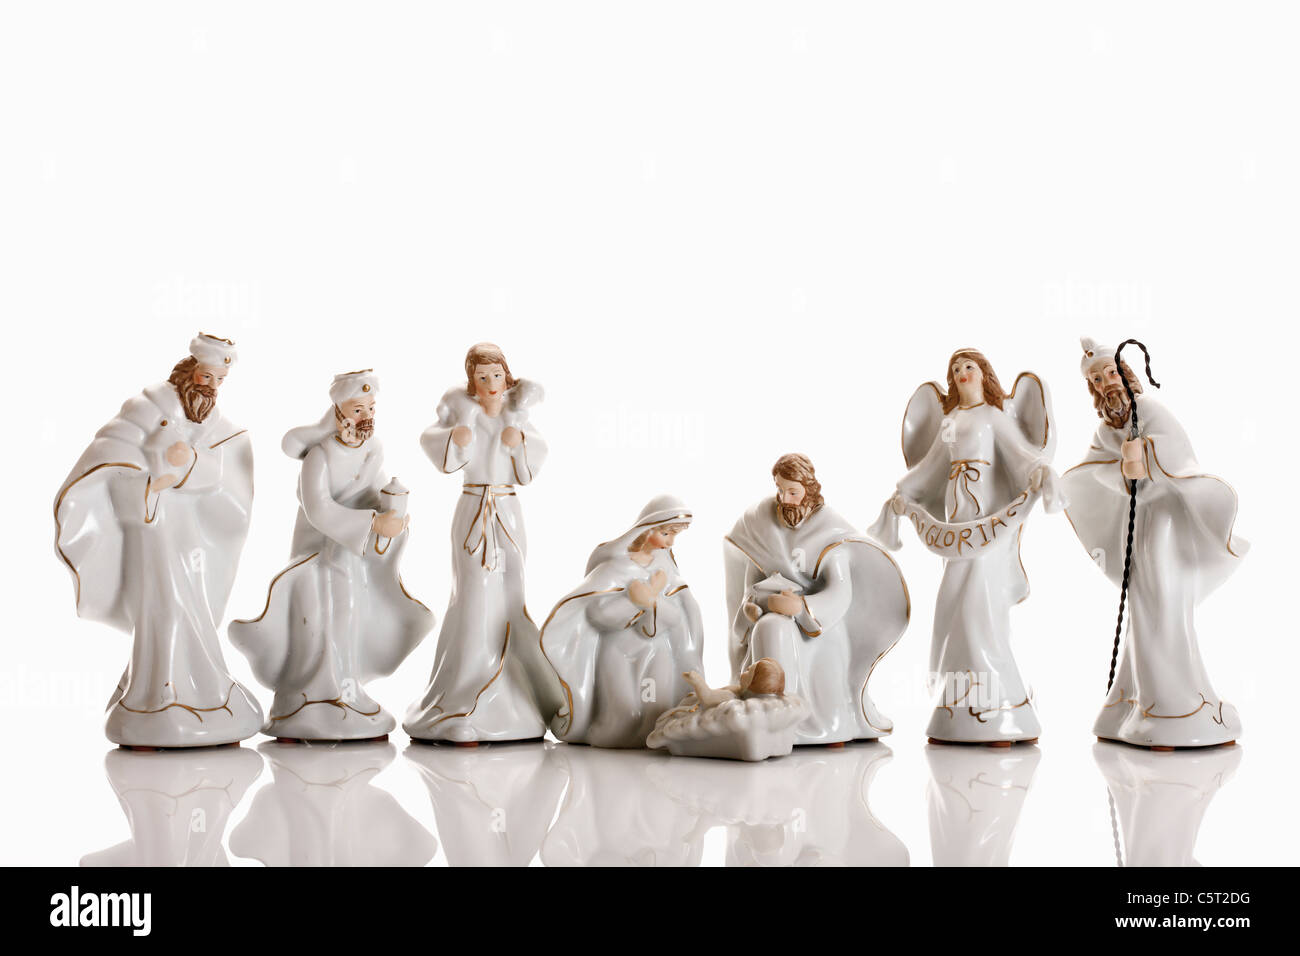 Christmas decoration, nativity scene, crib figurines - Stock Image